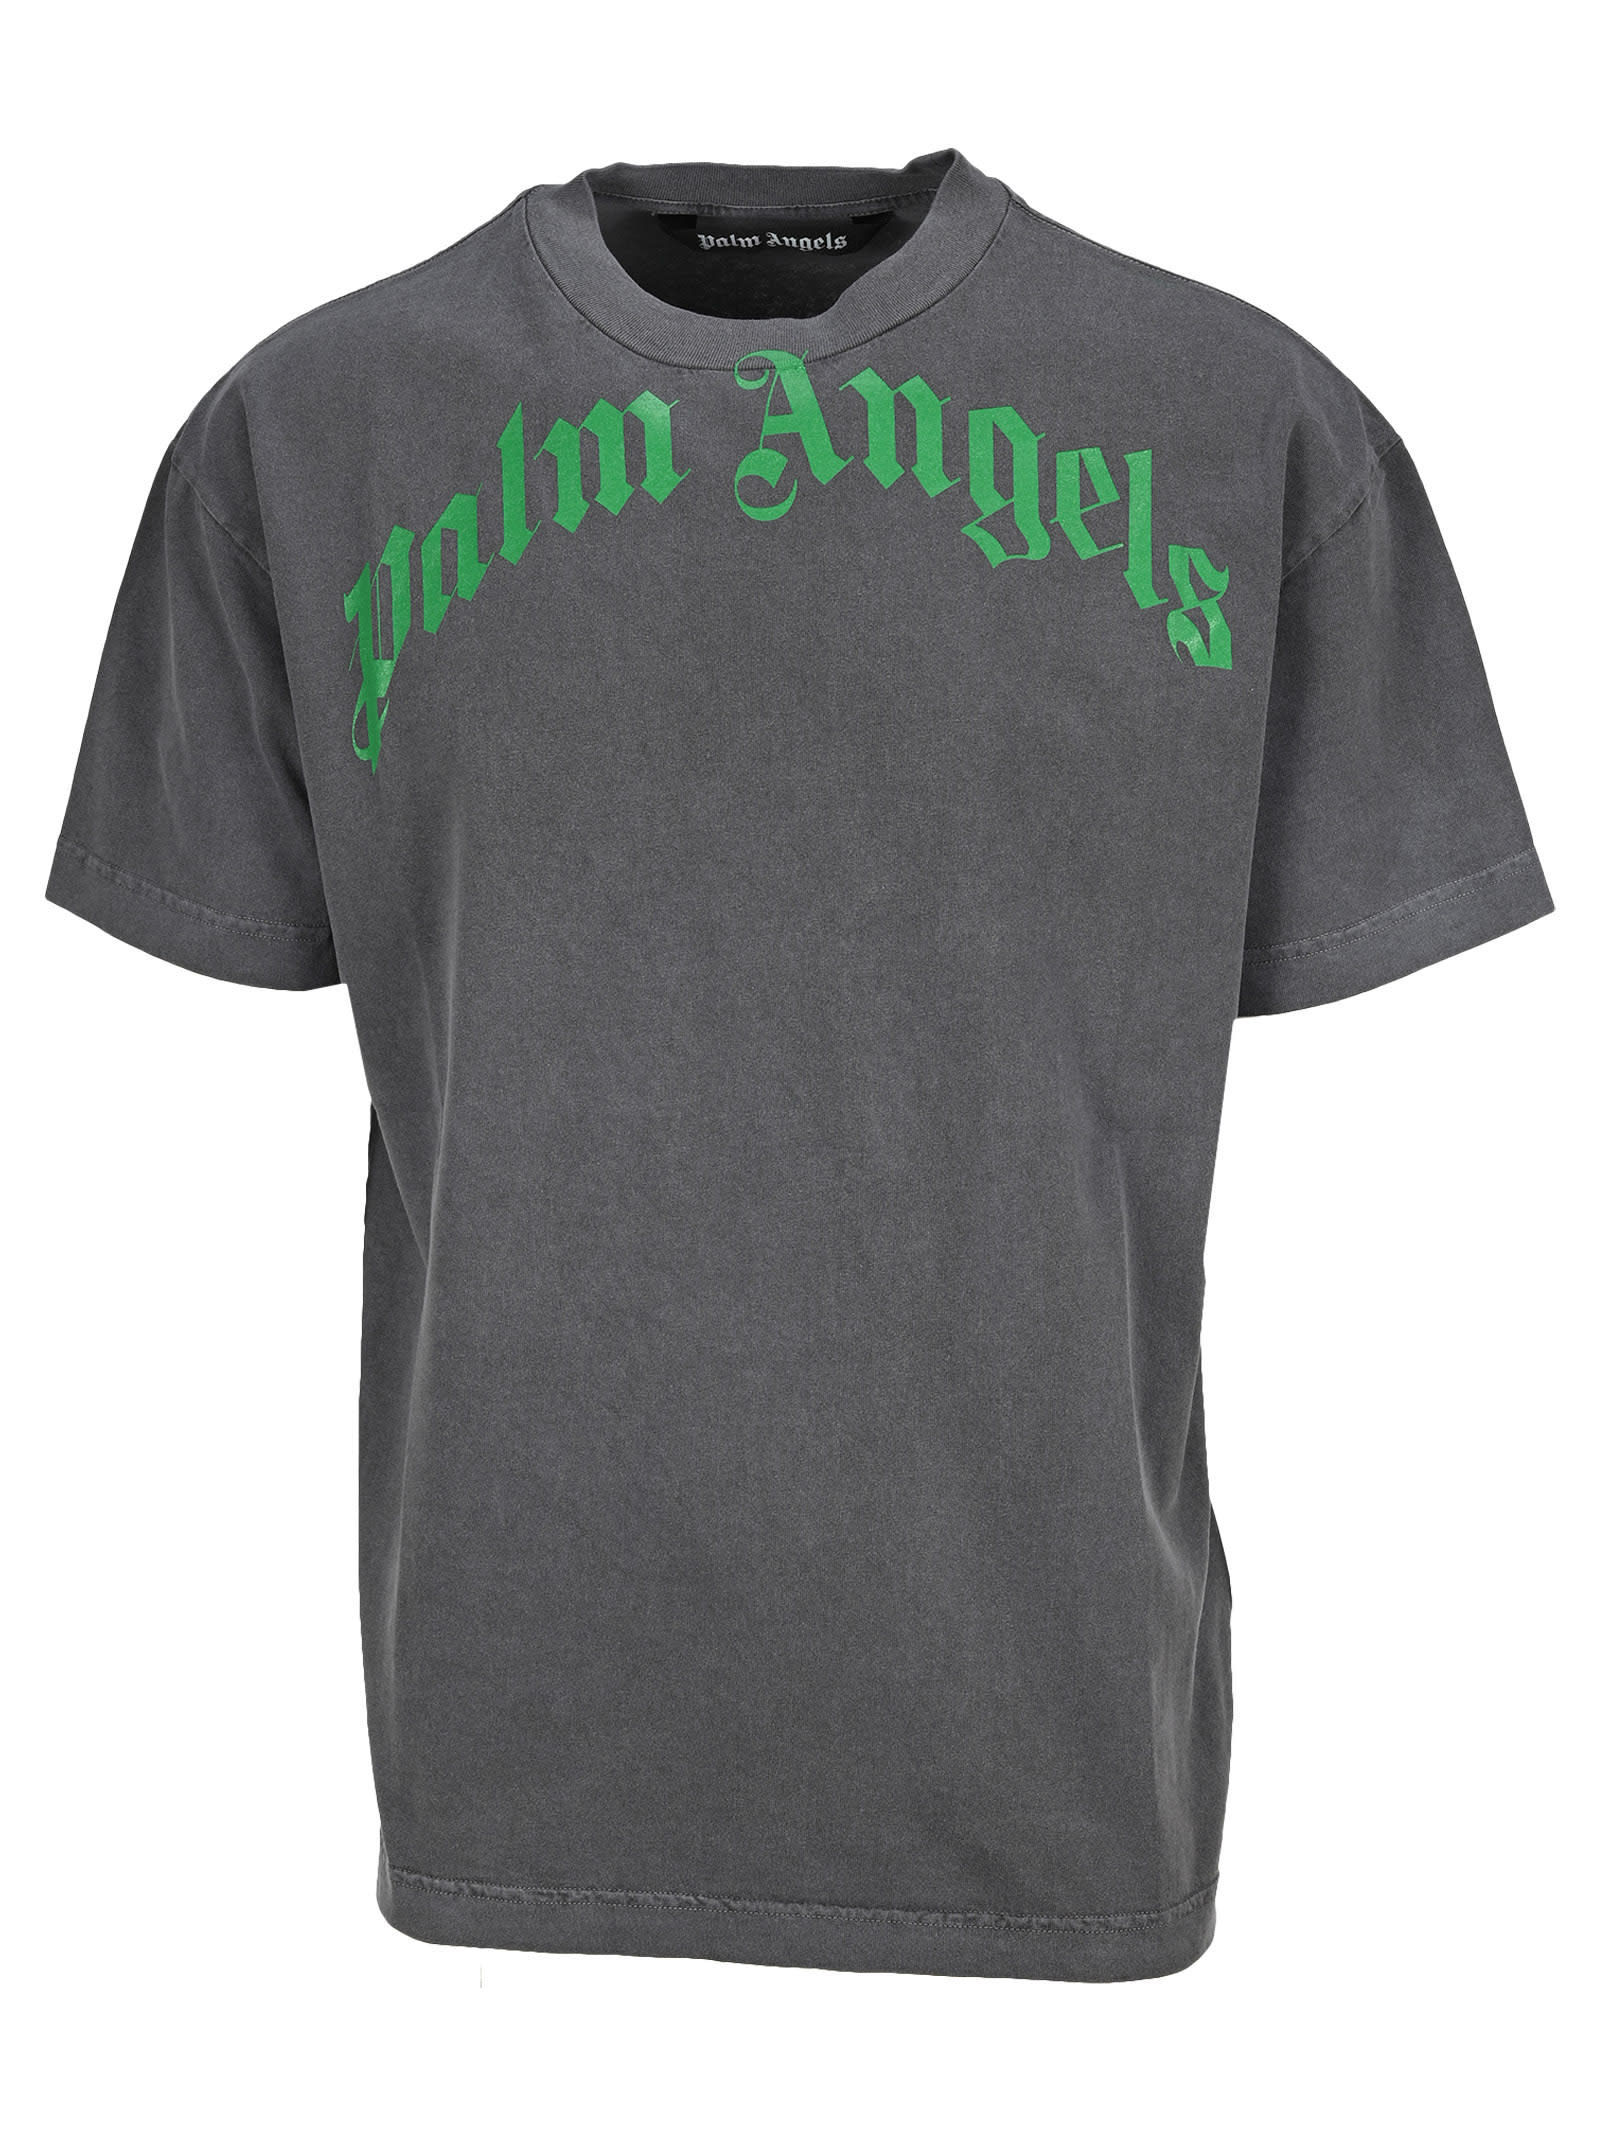 Palm Angels Vintage T-shirt